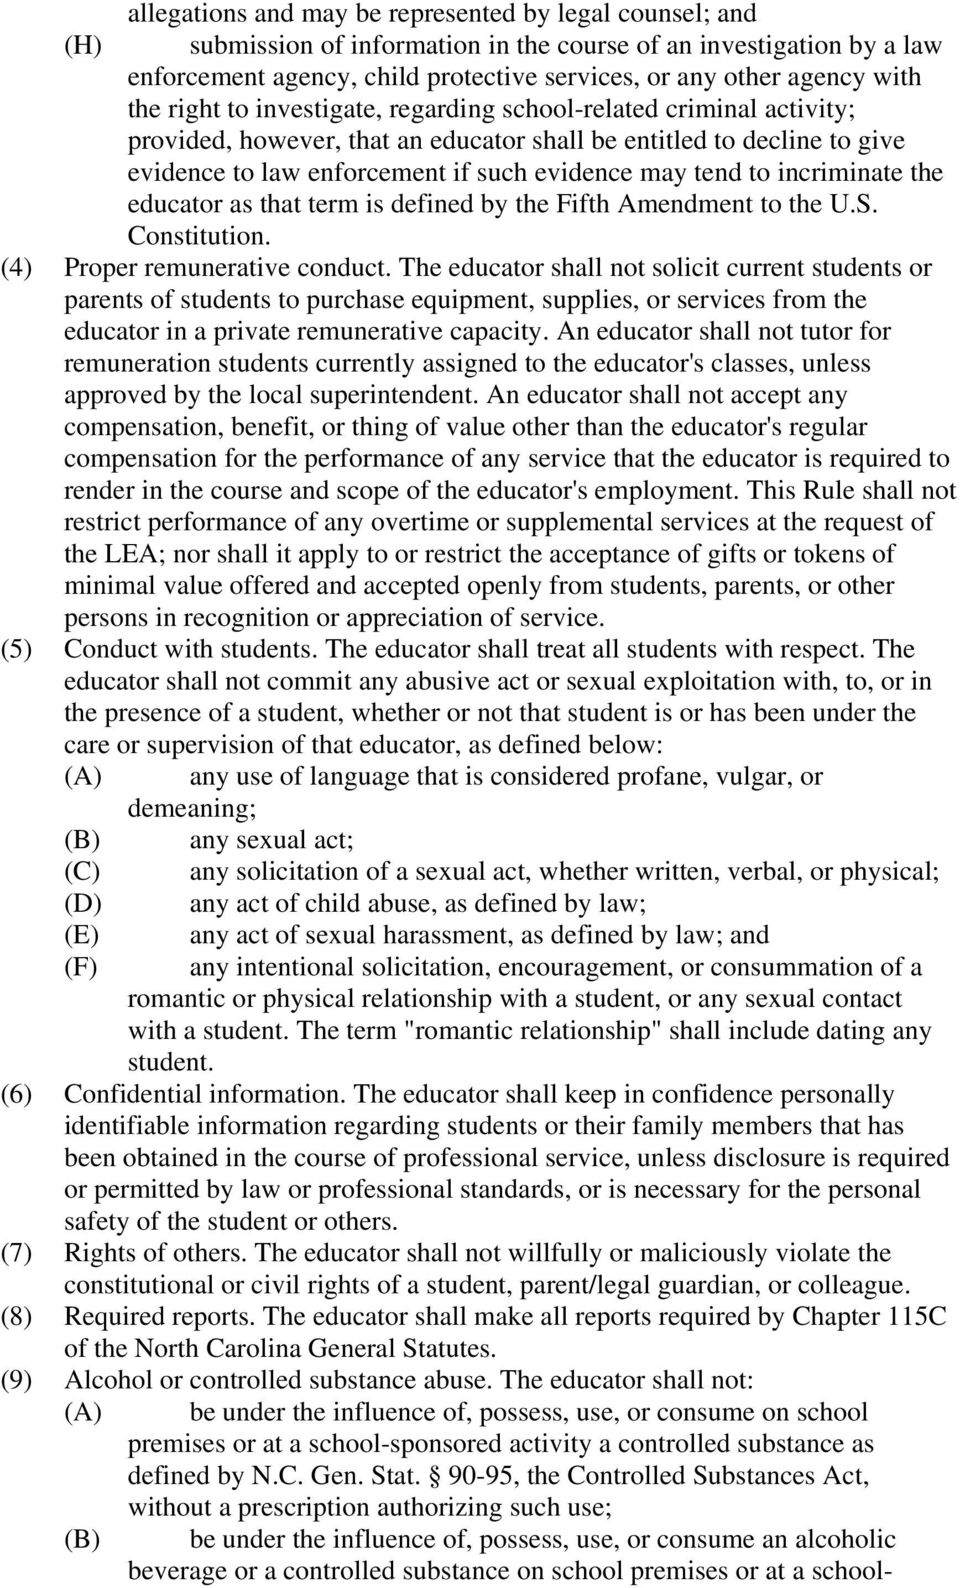 tend to incriminate the educator as that term is defined by the Fifth Amendment to the U.S. Constitution. (4) Proper remunerative conduct.